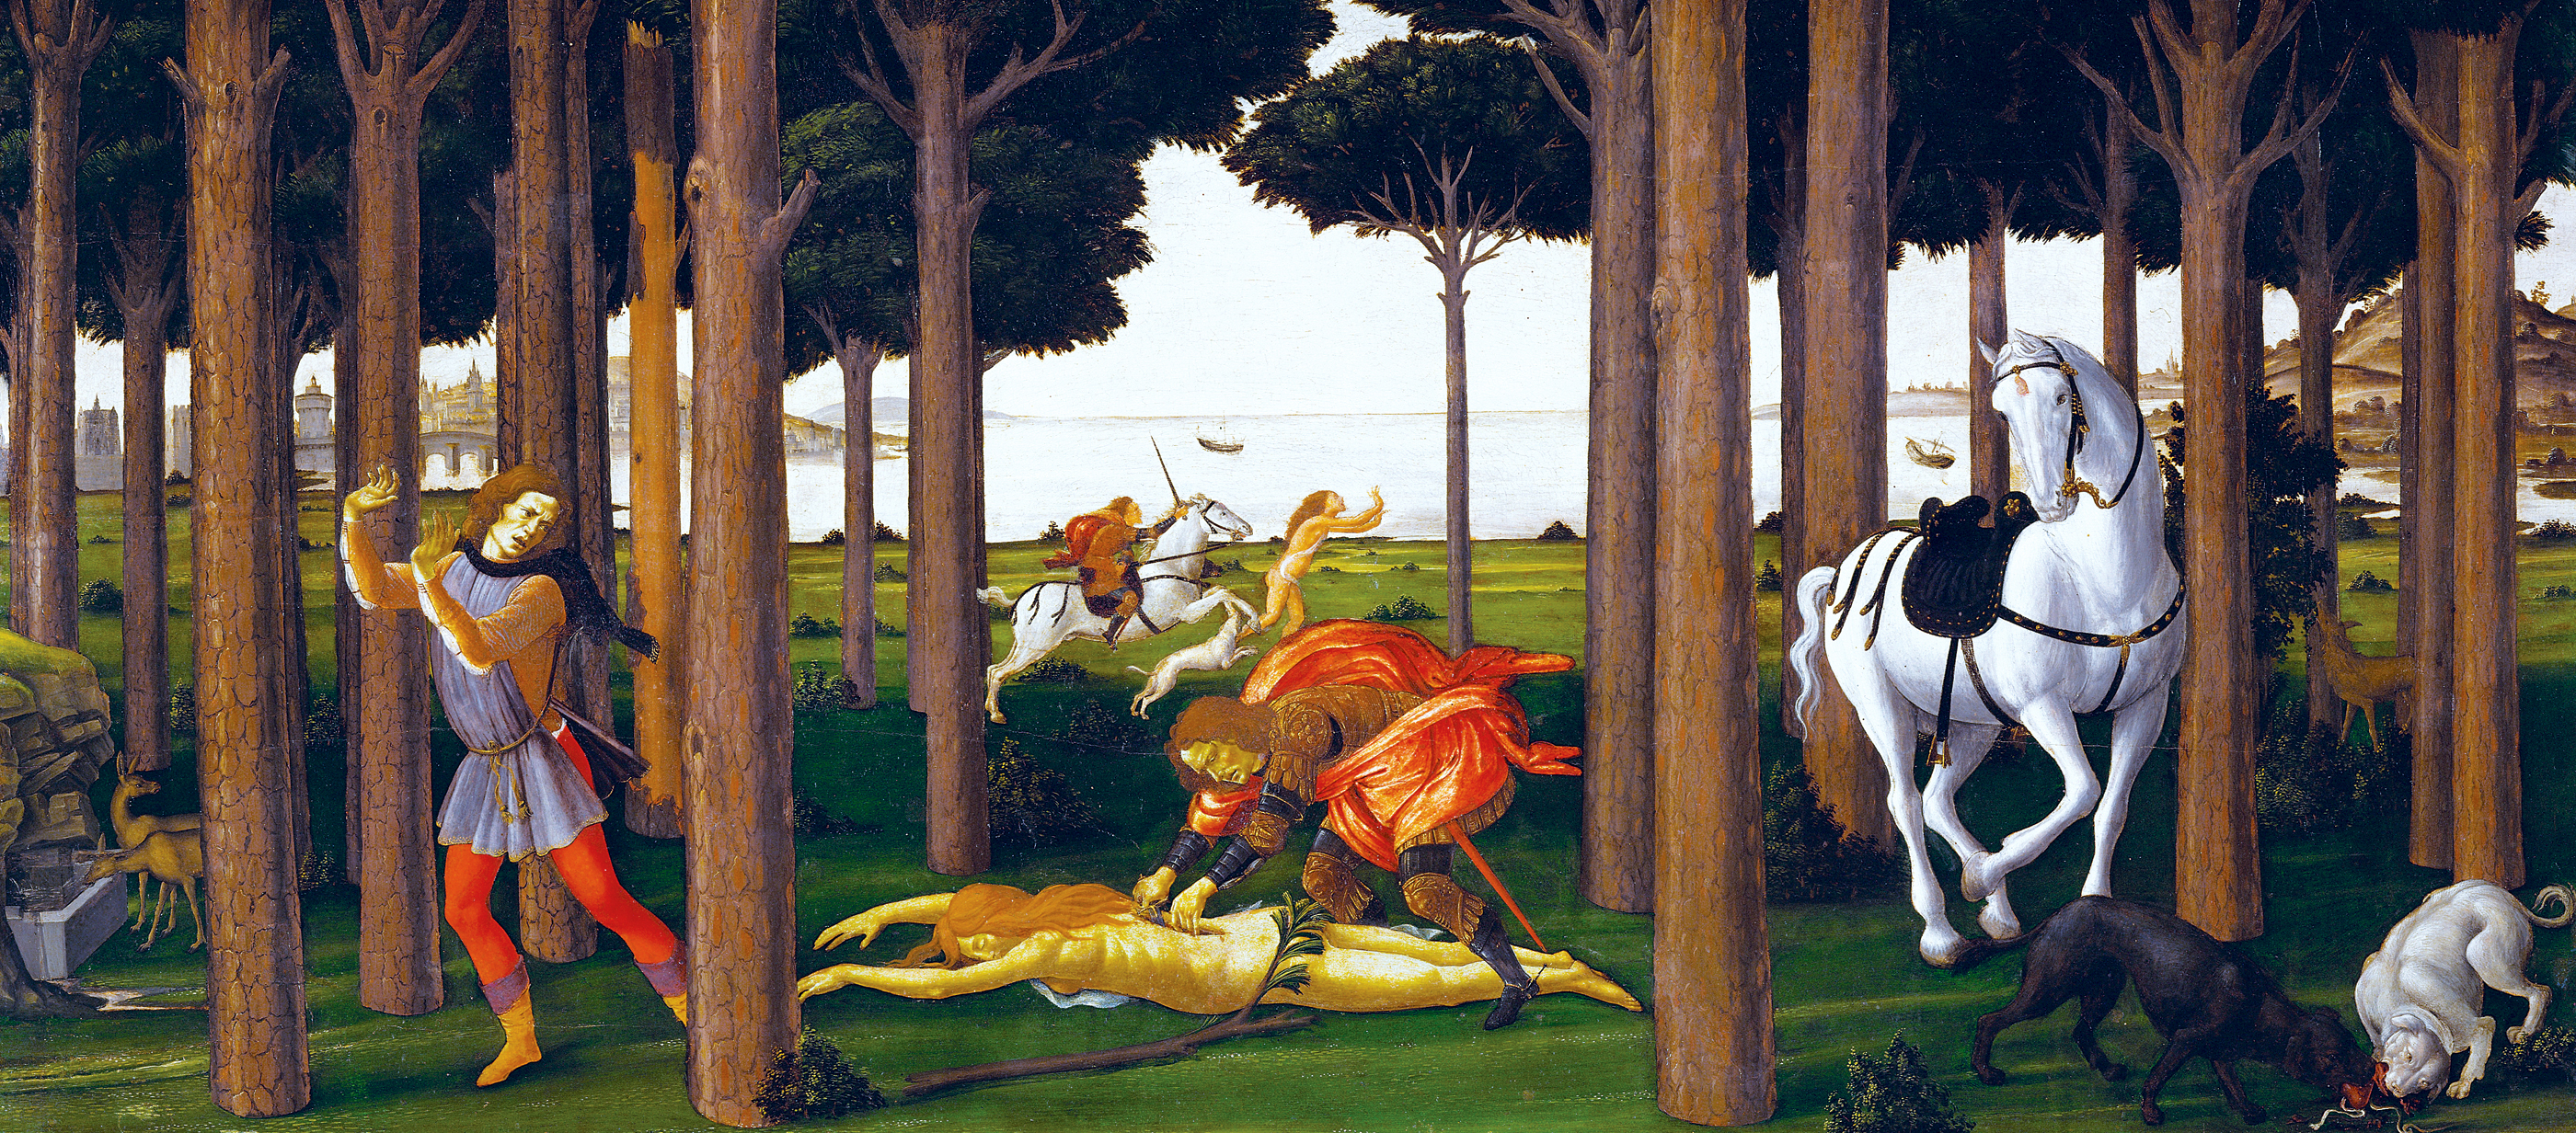 Story of Nastagio degli Onesti, second panel, by Sandro Botticelli, c.1483, based on Boccaccio's Decameron. Prado Museum, Madrid, Spain.